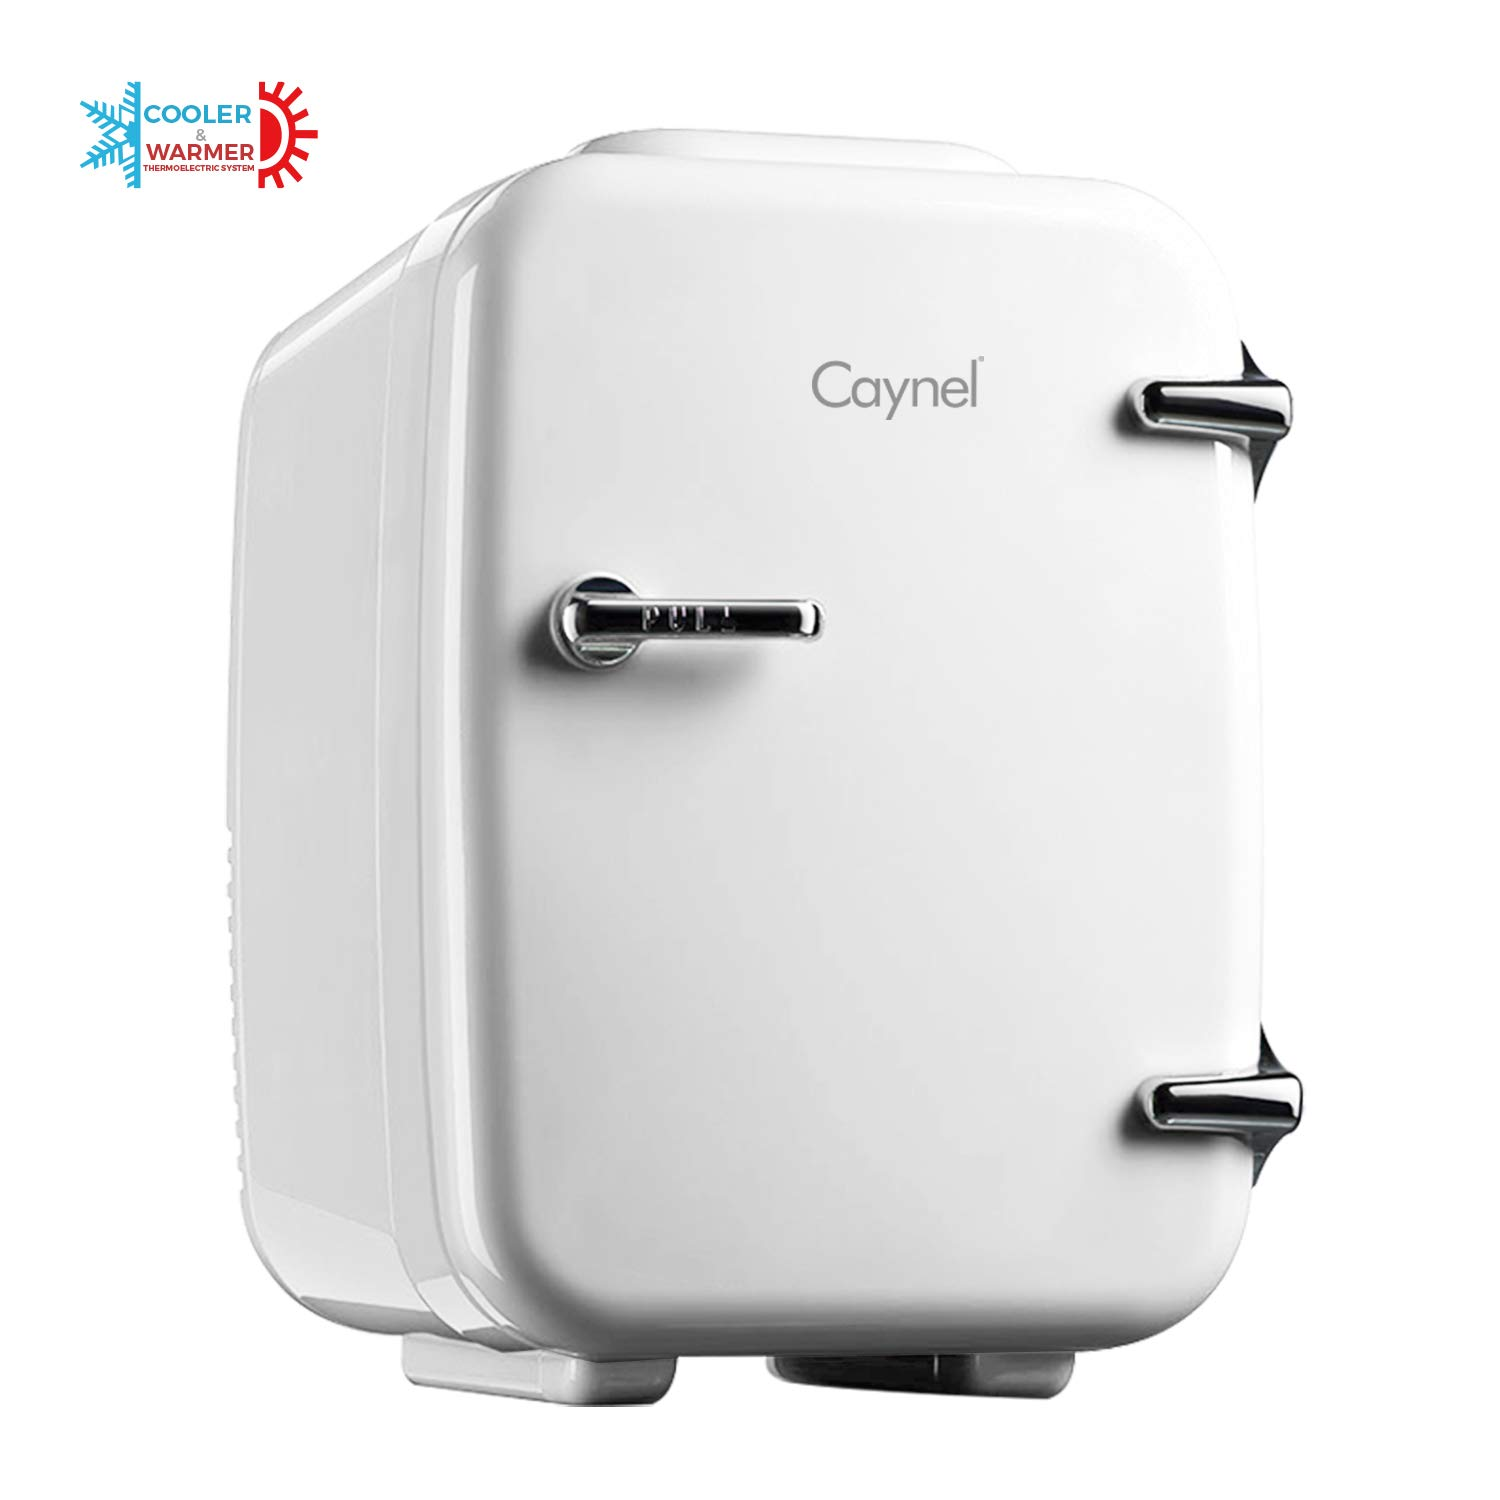 CAYNEL Mini Fridge Cooler and Warmer, (4Liter / 6Can) Portable Compact Personal Fridge, AC/DC Thermoelectric System, 100% Freon-Free Eco Friendly for Home, Office and Car, Includes 100-Pcs Stickers by CAYNEL